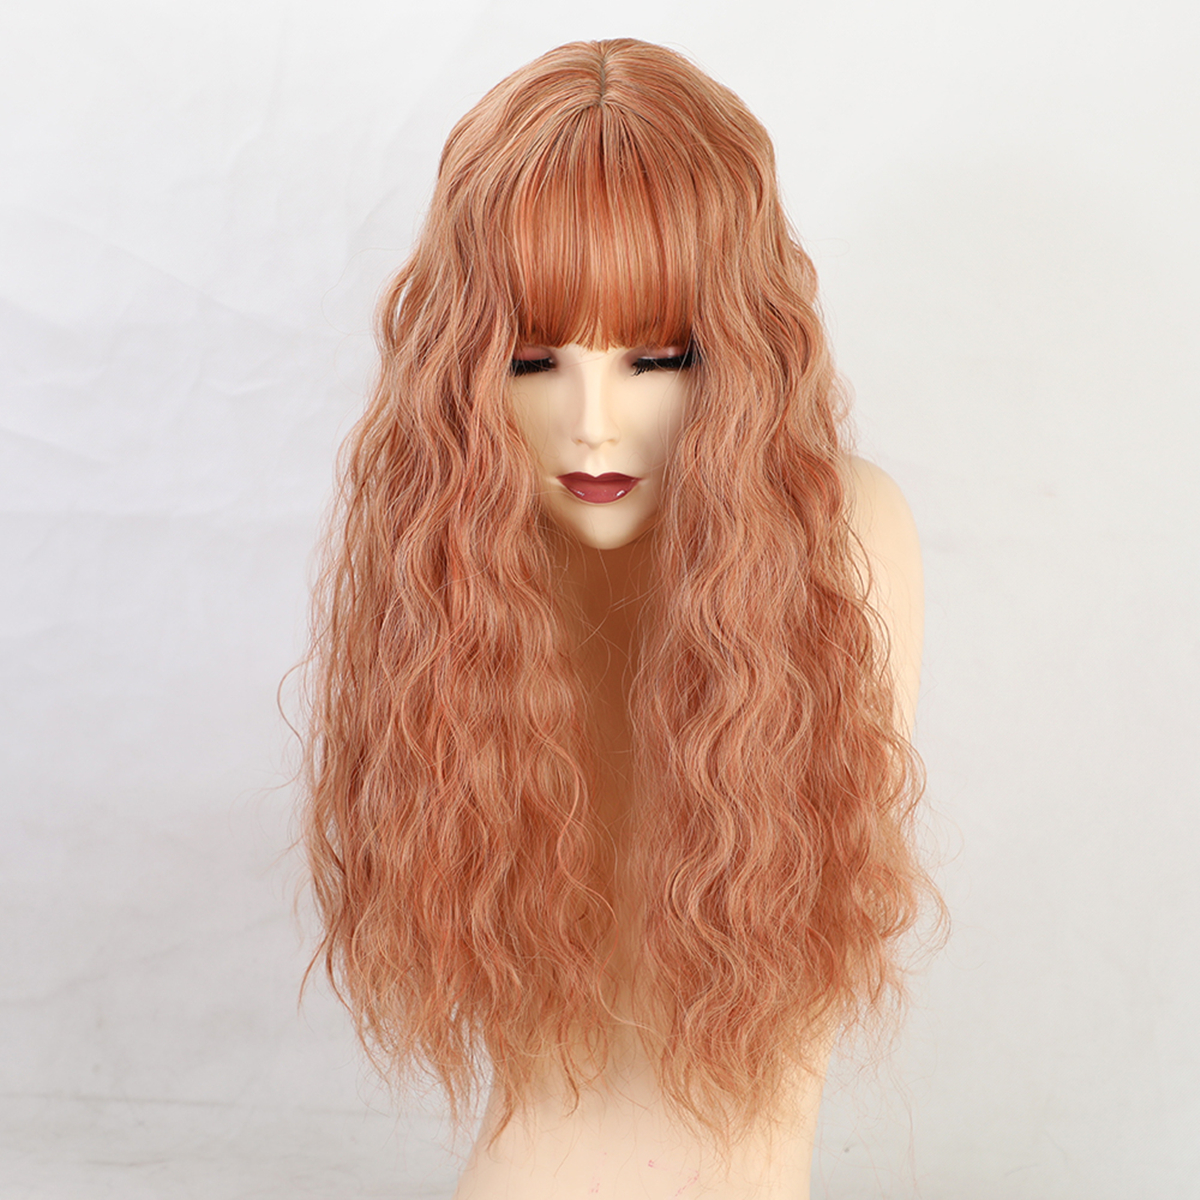 22 Synthetic Hair Women Wigs Long Curly with Bangs Wig Orange""